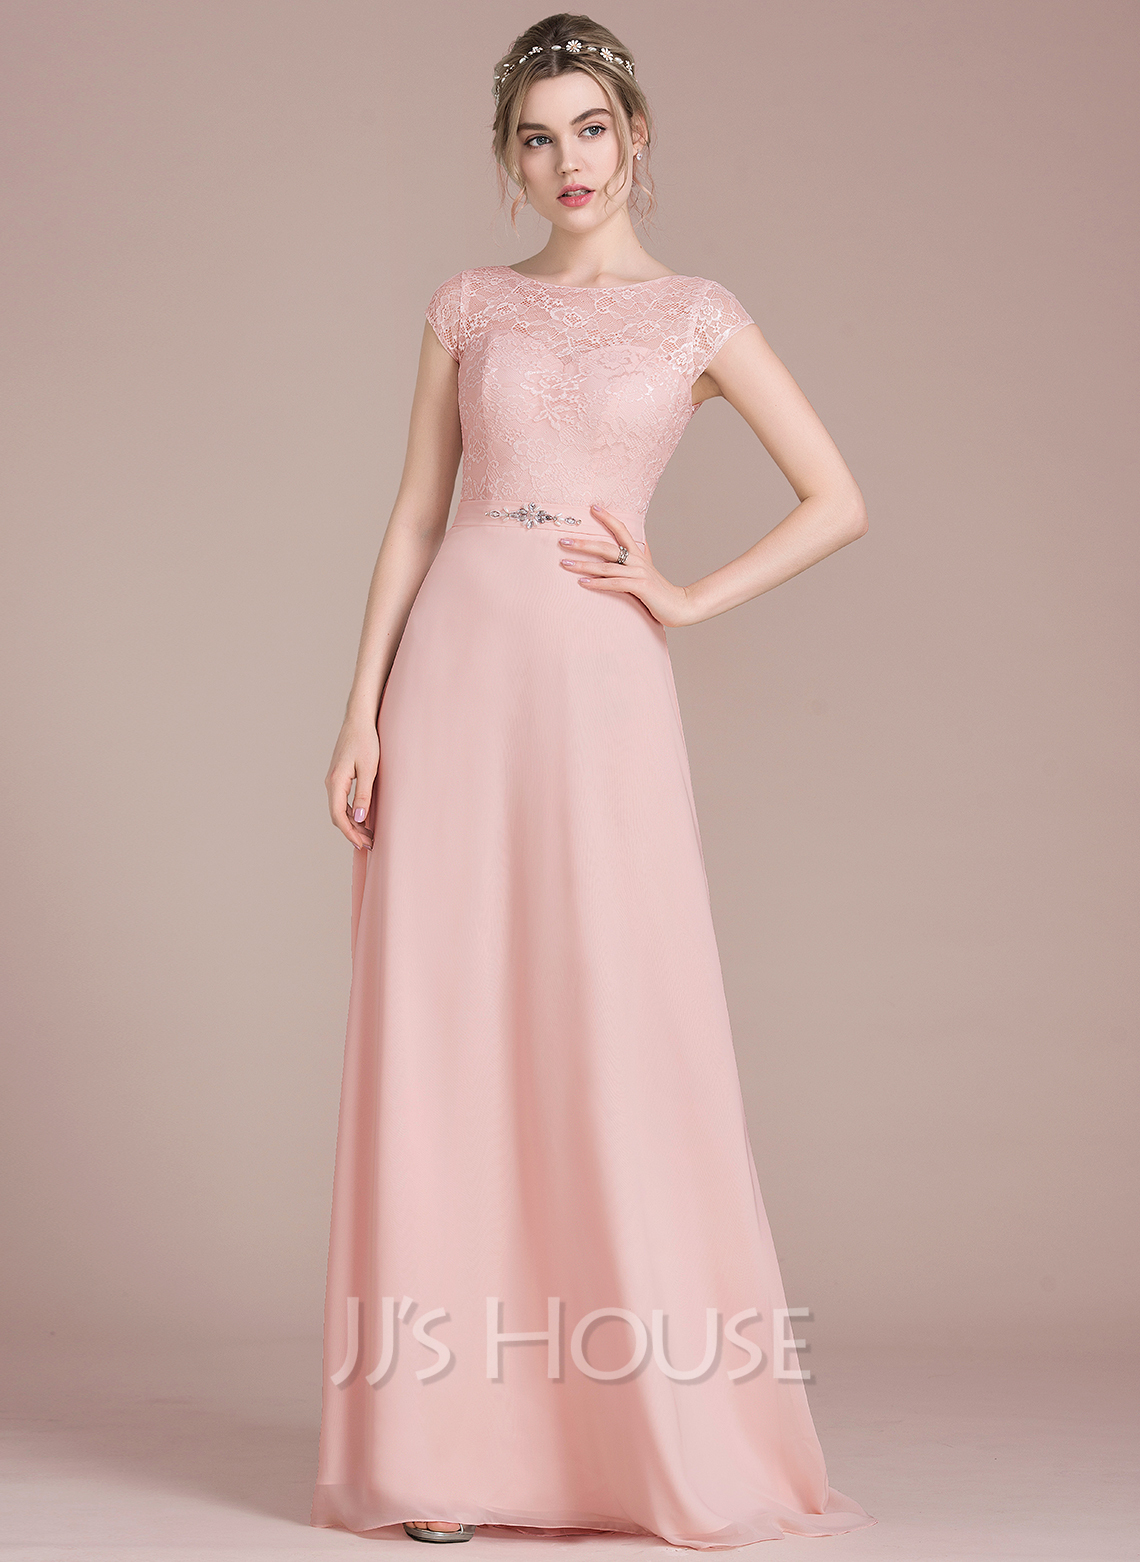 2dfbc790e0f A-Line Princess Scoop Neck Floor-Length Chiffon Lace Prom Dresses With  Beading. Loading zoom